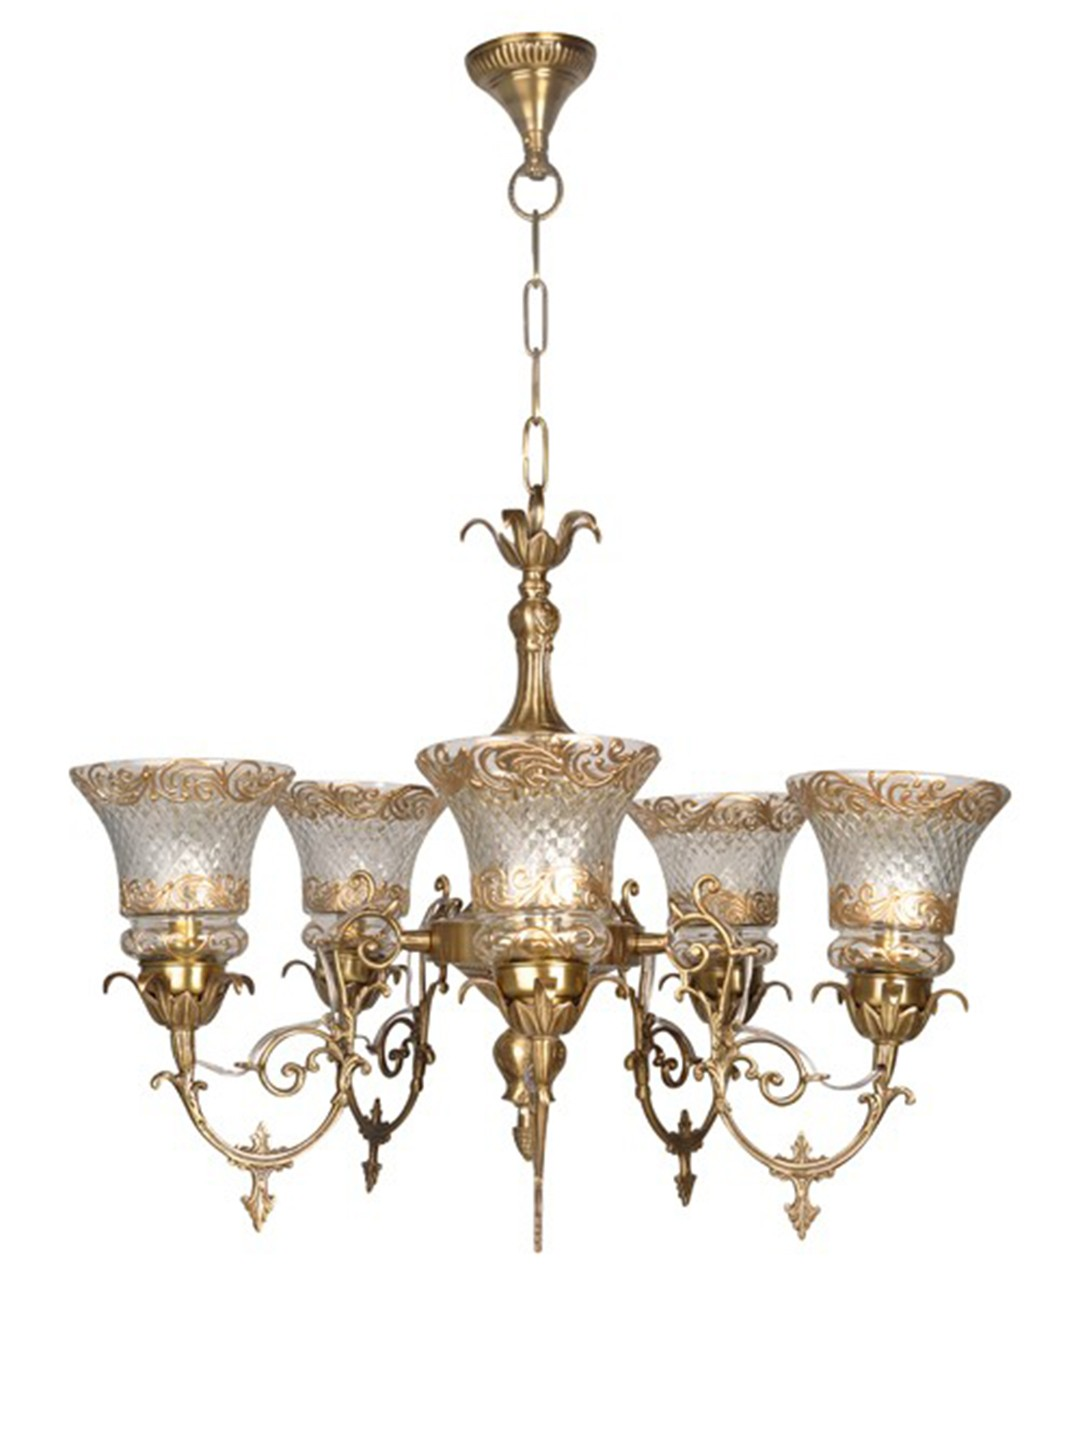 Ornate Brass 5 Light Cut Glass Chandelier